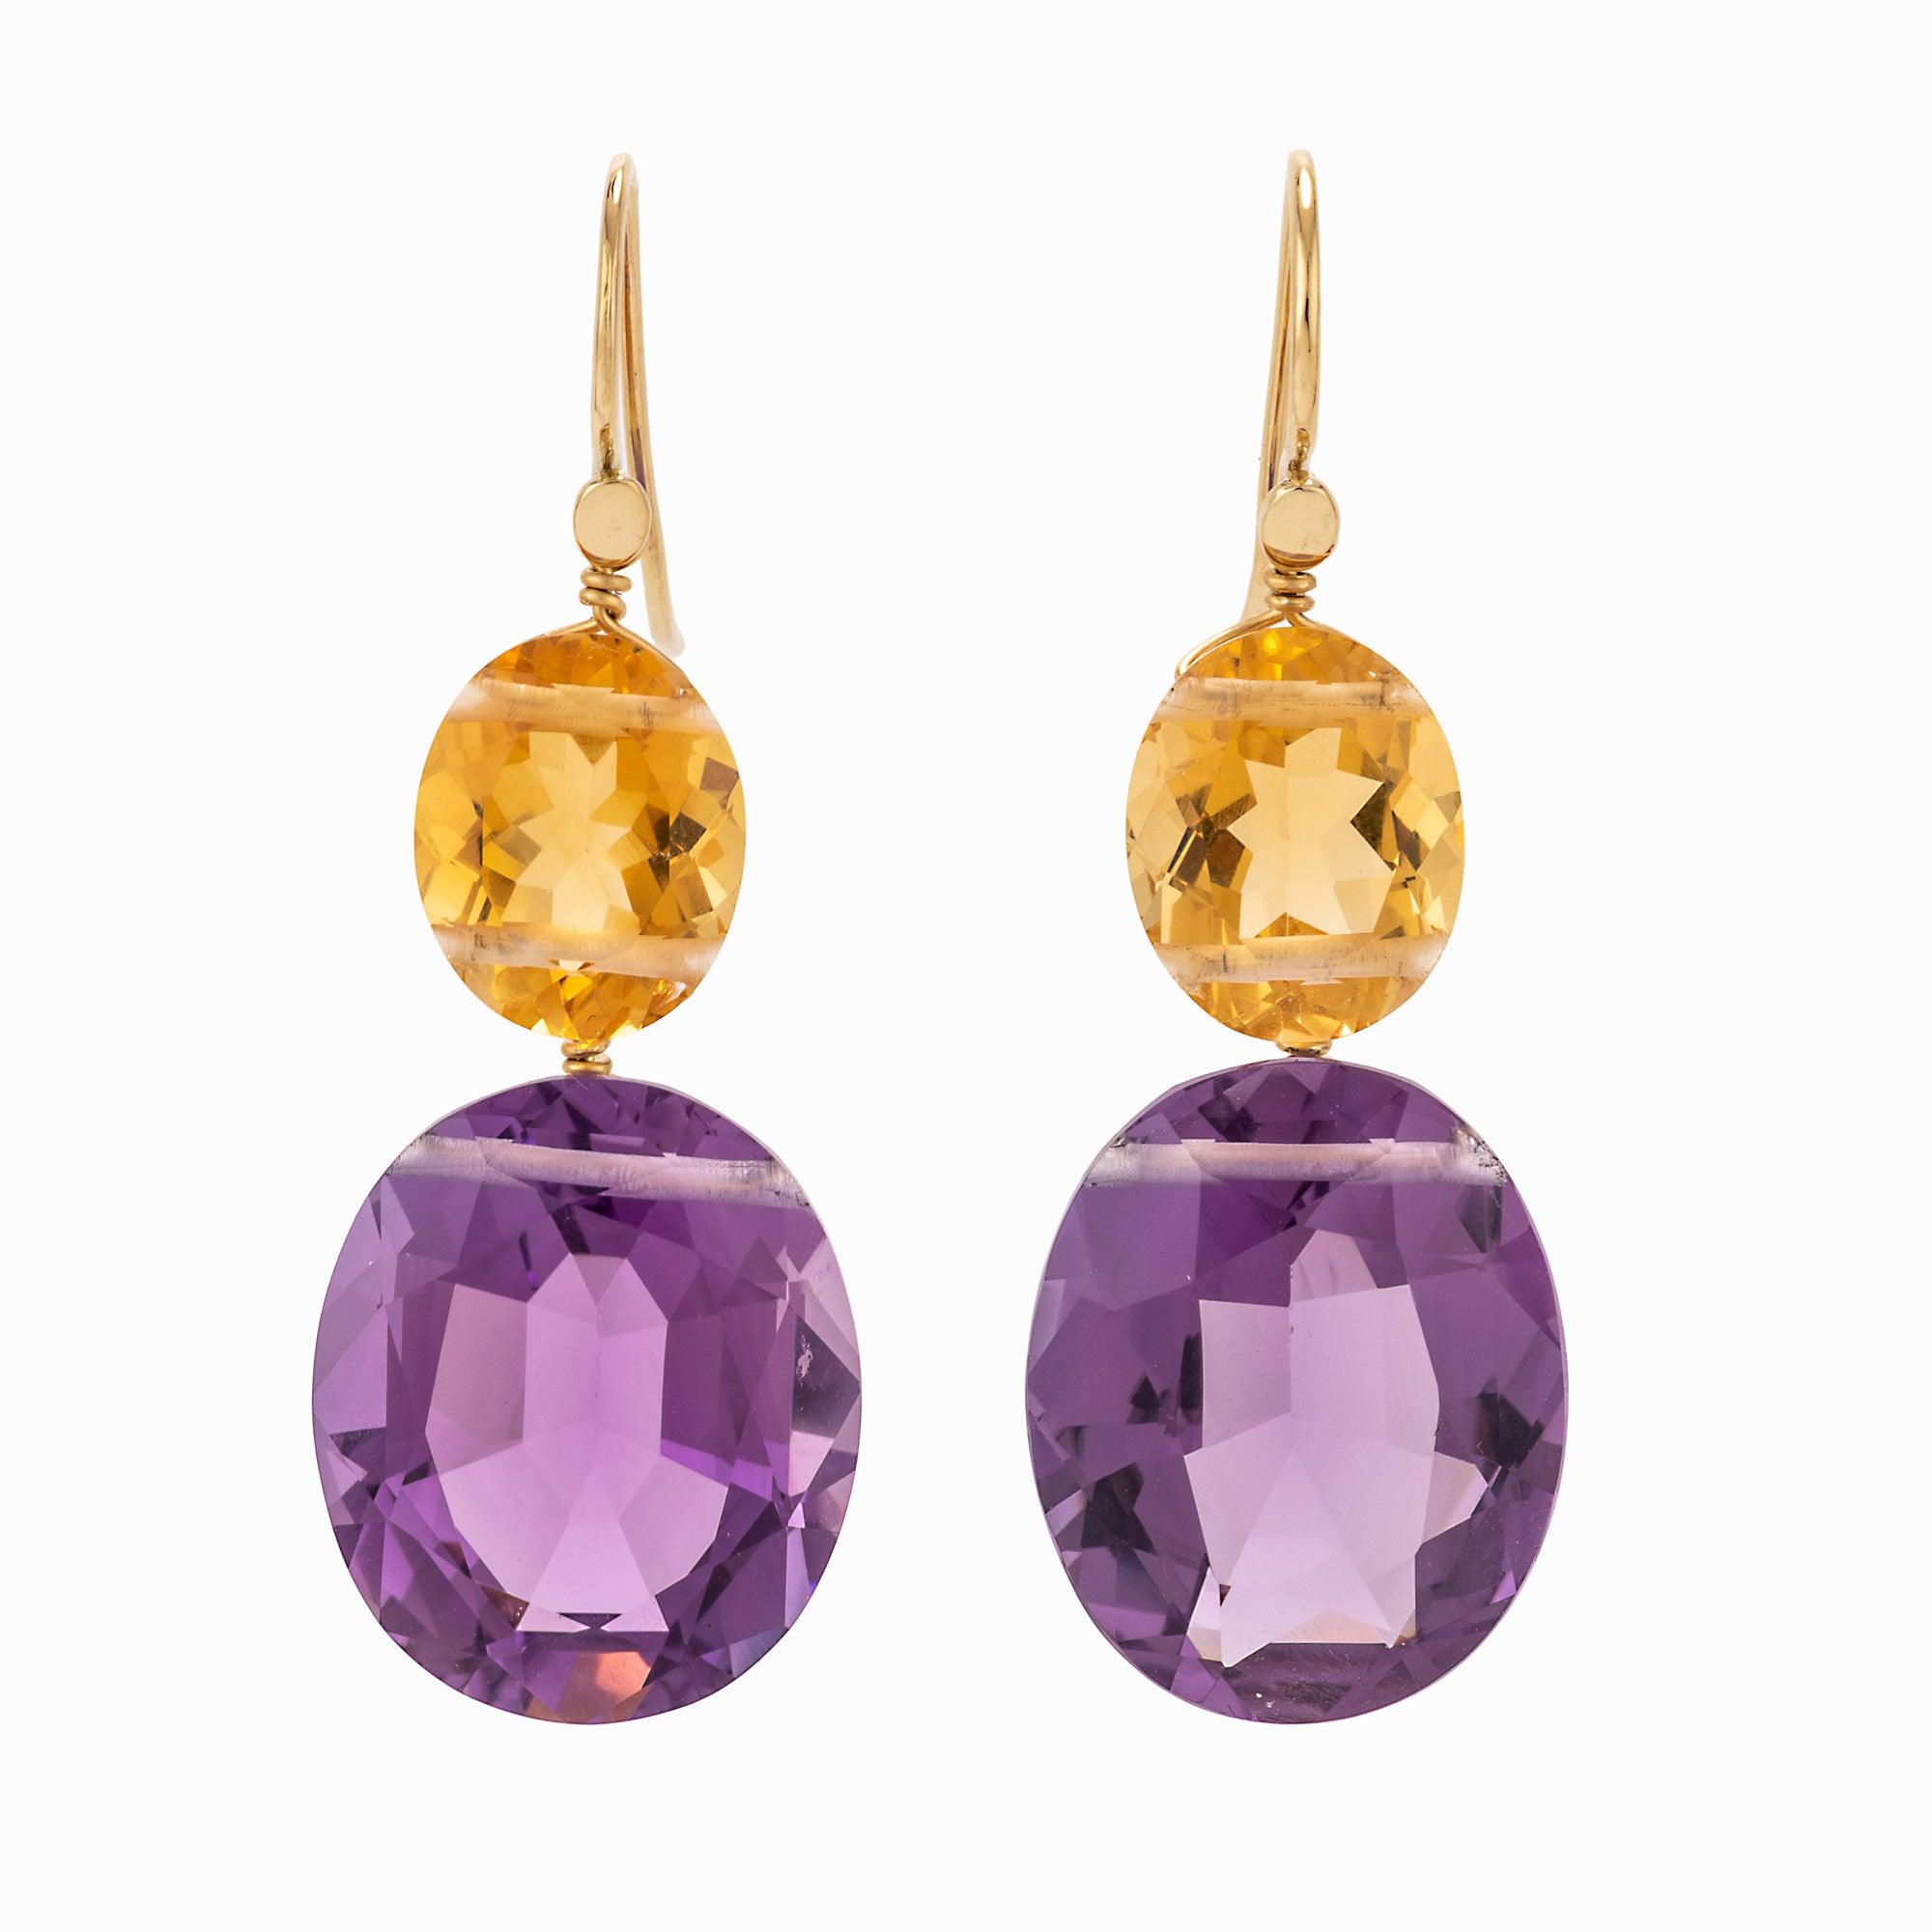 Oval II amethyst earrings